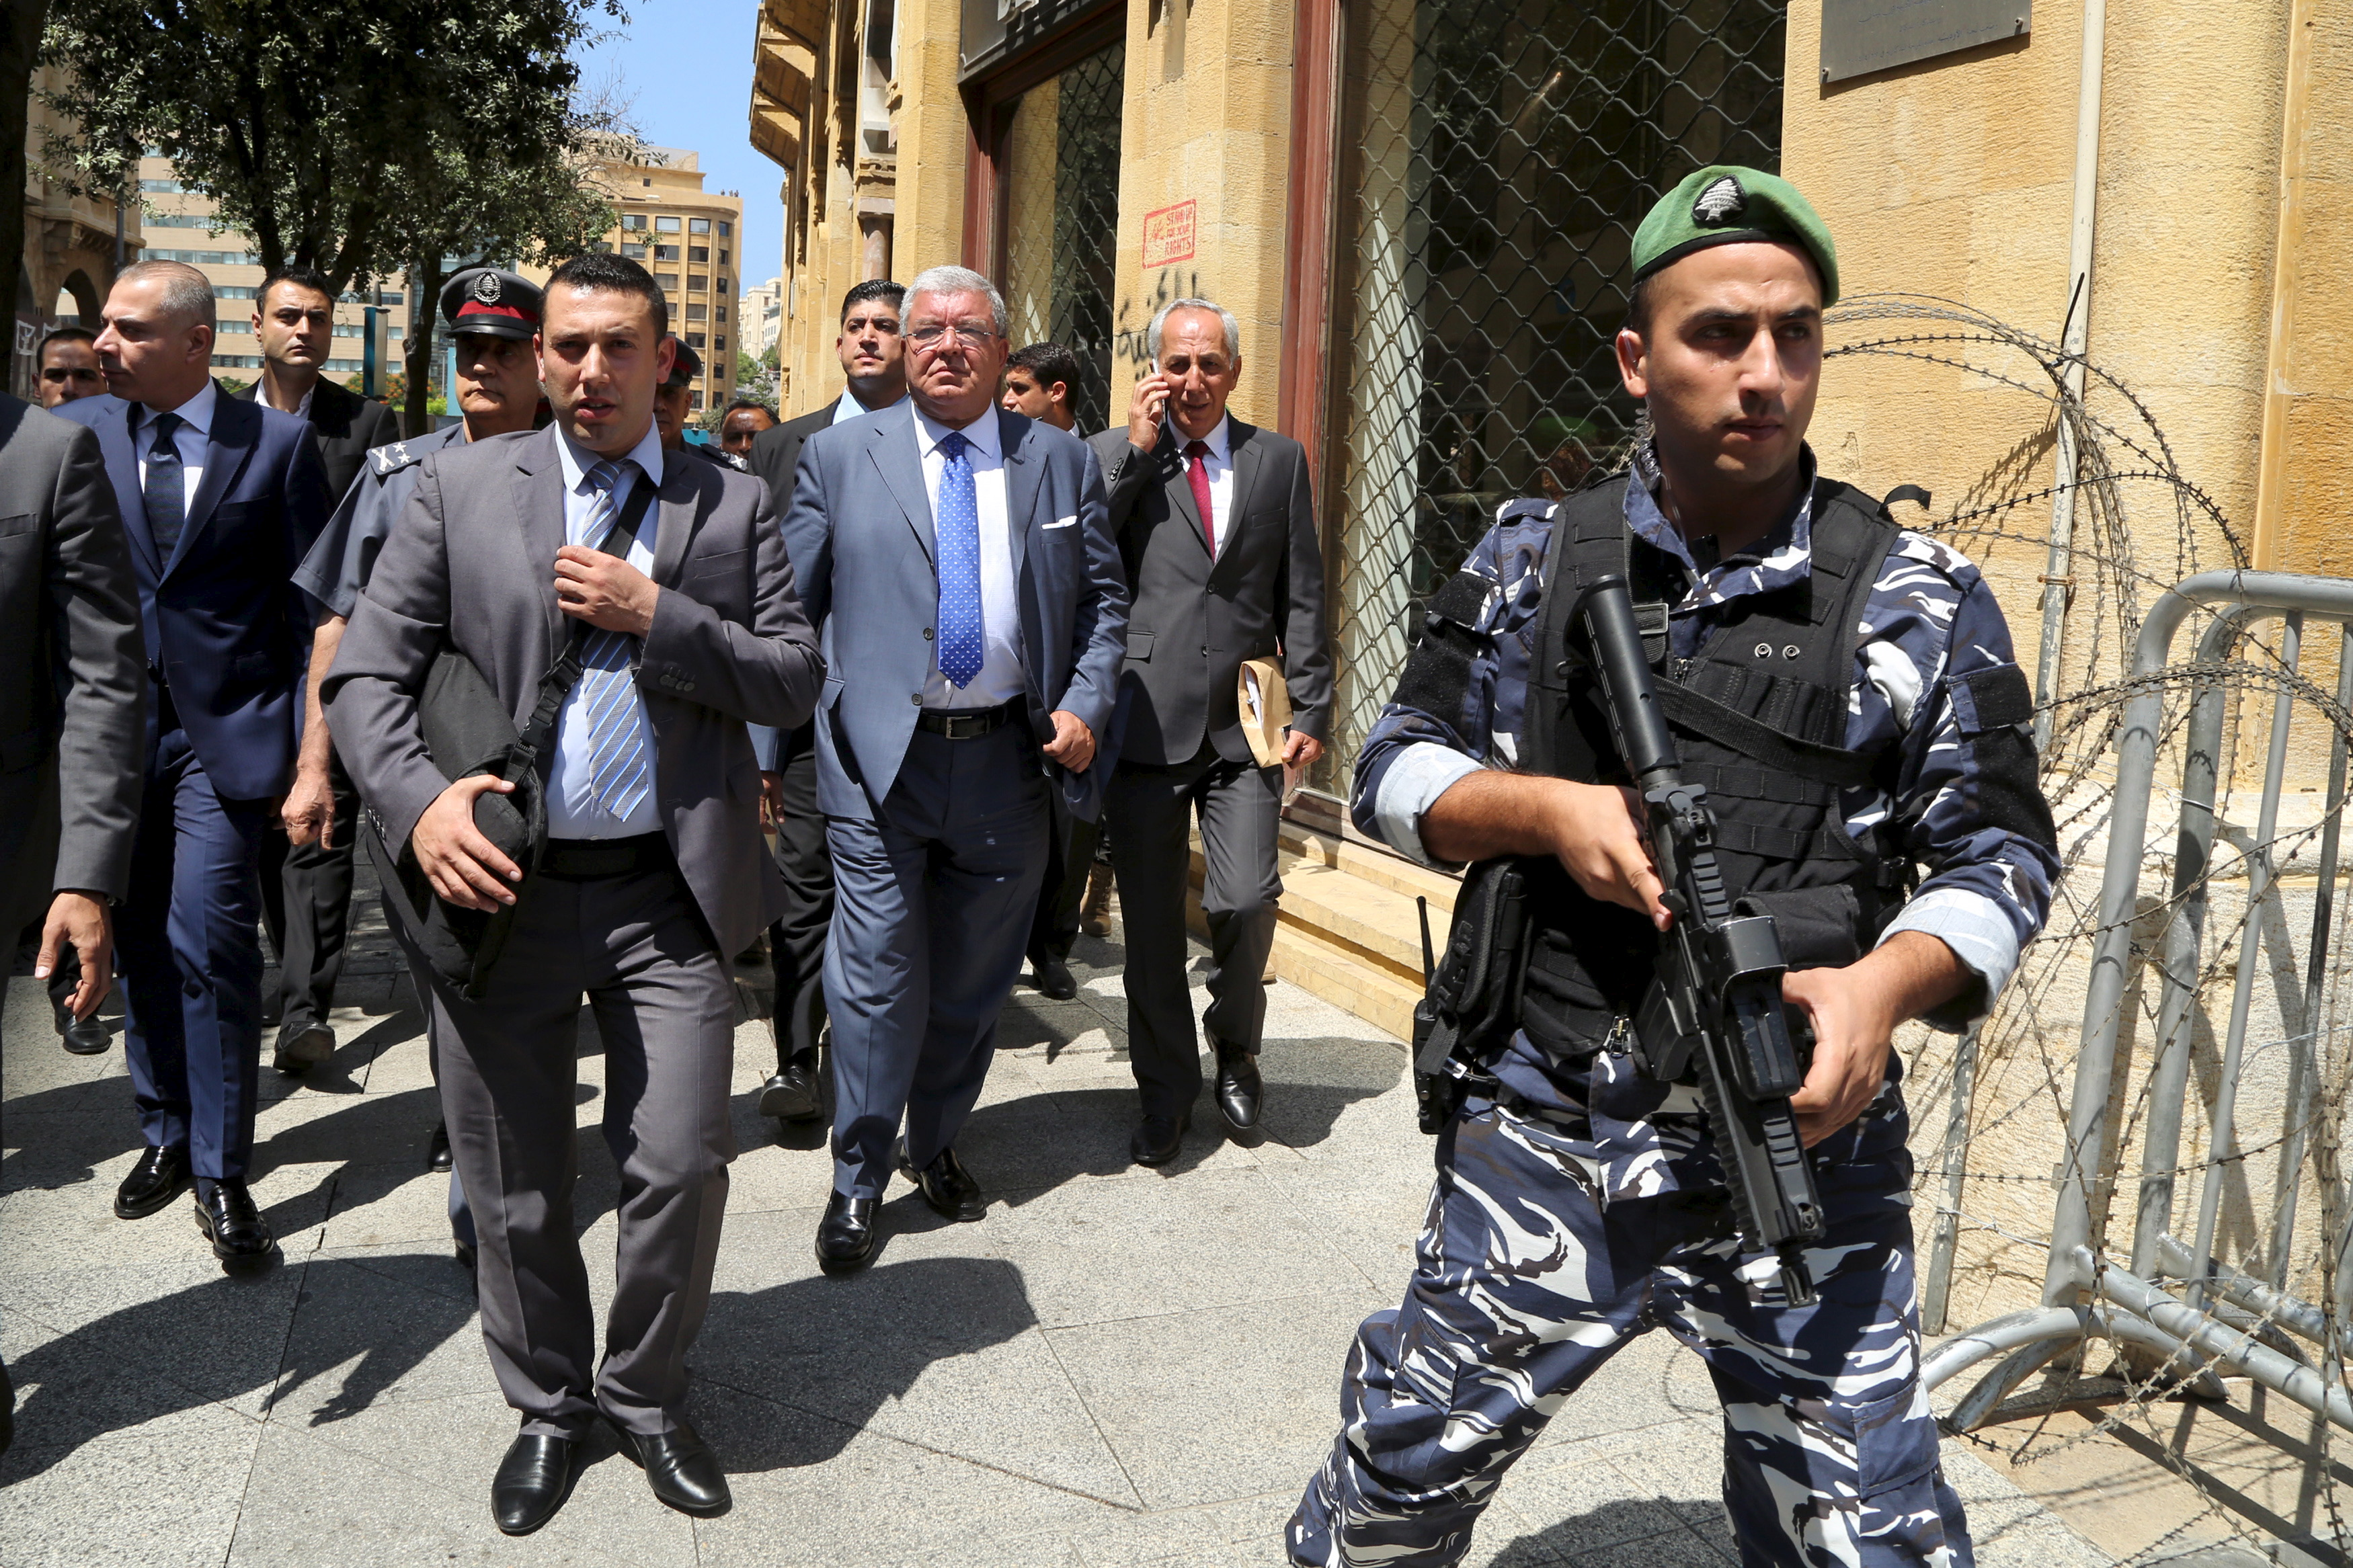 Lebanese Interior Minister Nouhad Machnouk (center) tours the streets of Beirut on Aug. 24, a day after protests against the government turned into violent clashes with police. Photo by Aziz Taher/Reuters